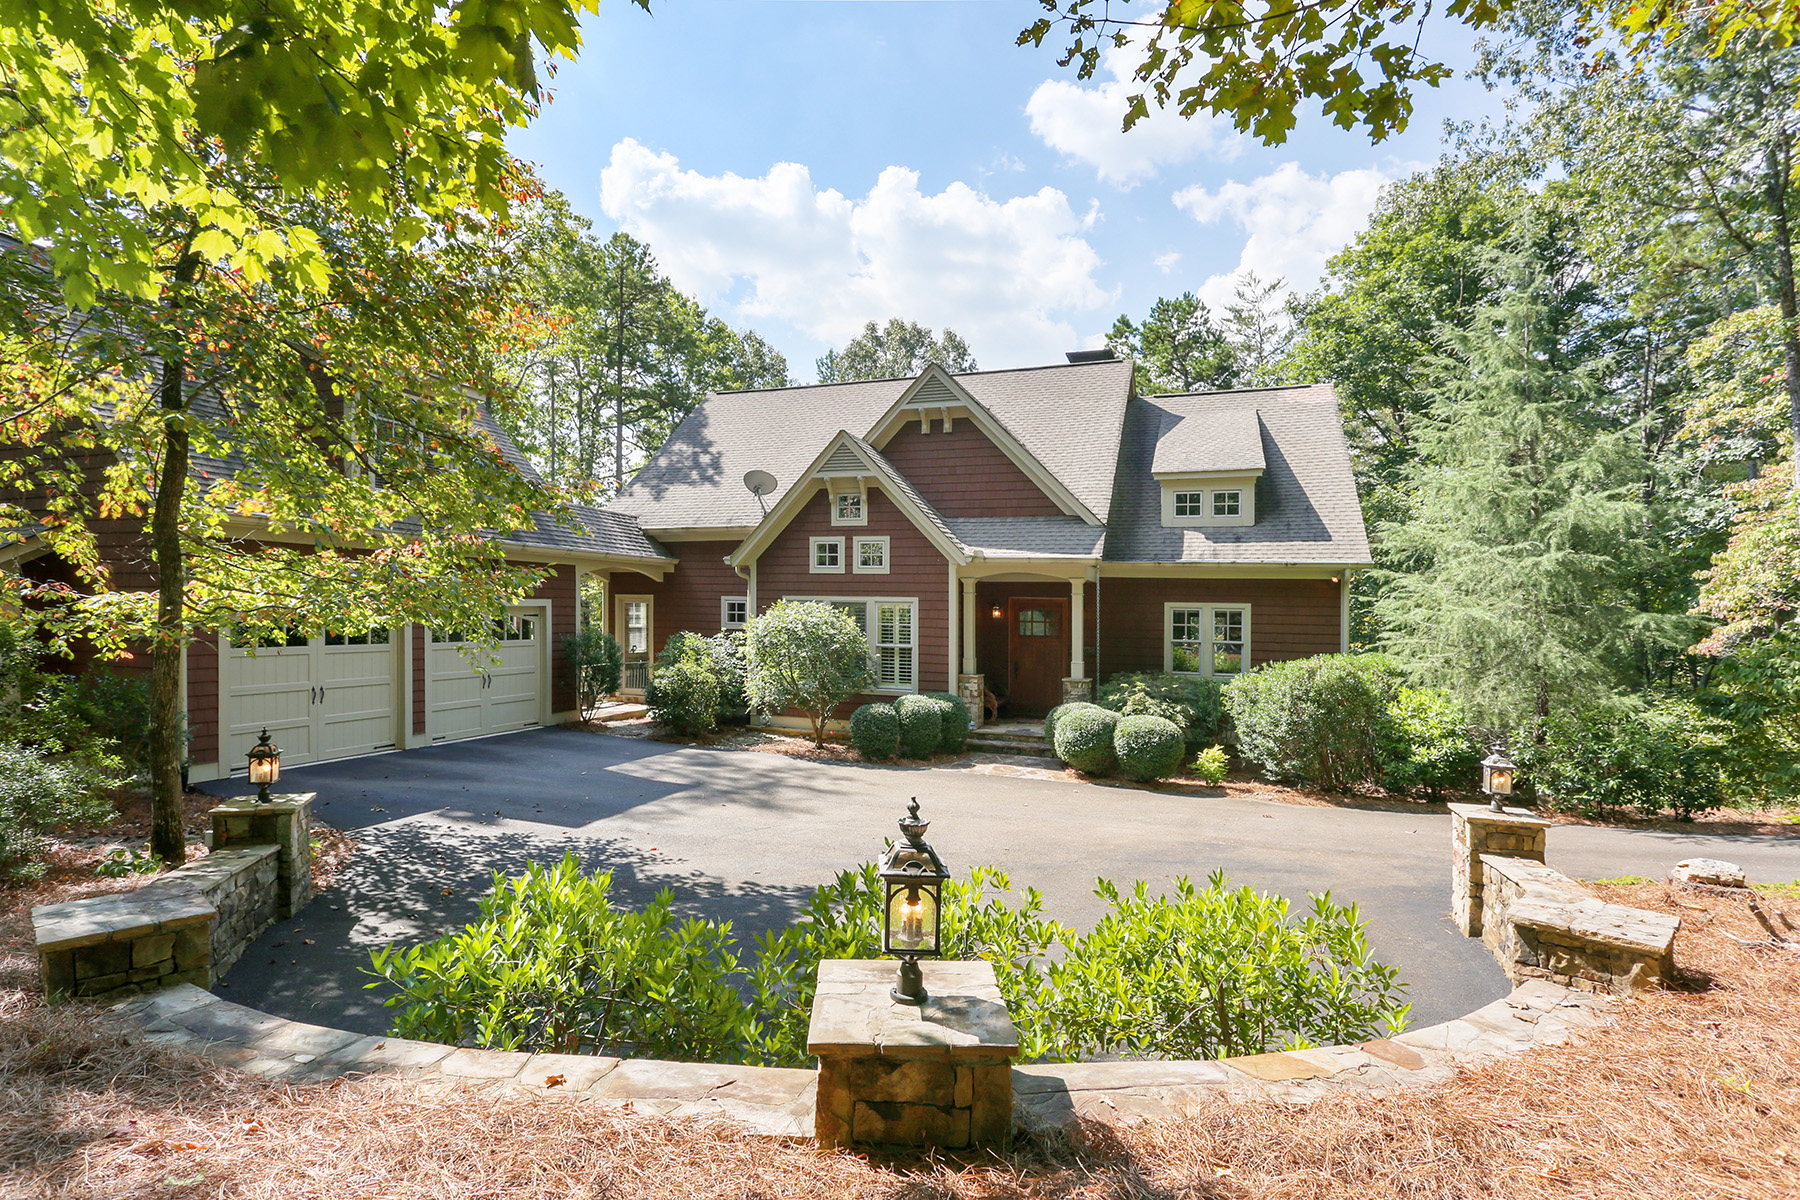 Single Family Homes for Active at Outstanding Craftsman Masterpiece In Big Canoe 176 Red Trillium Ridge Big Canoe, Georgia 30143 United States